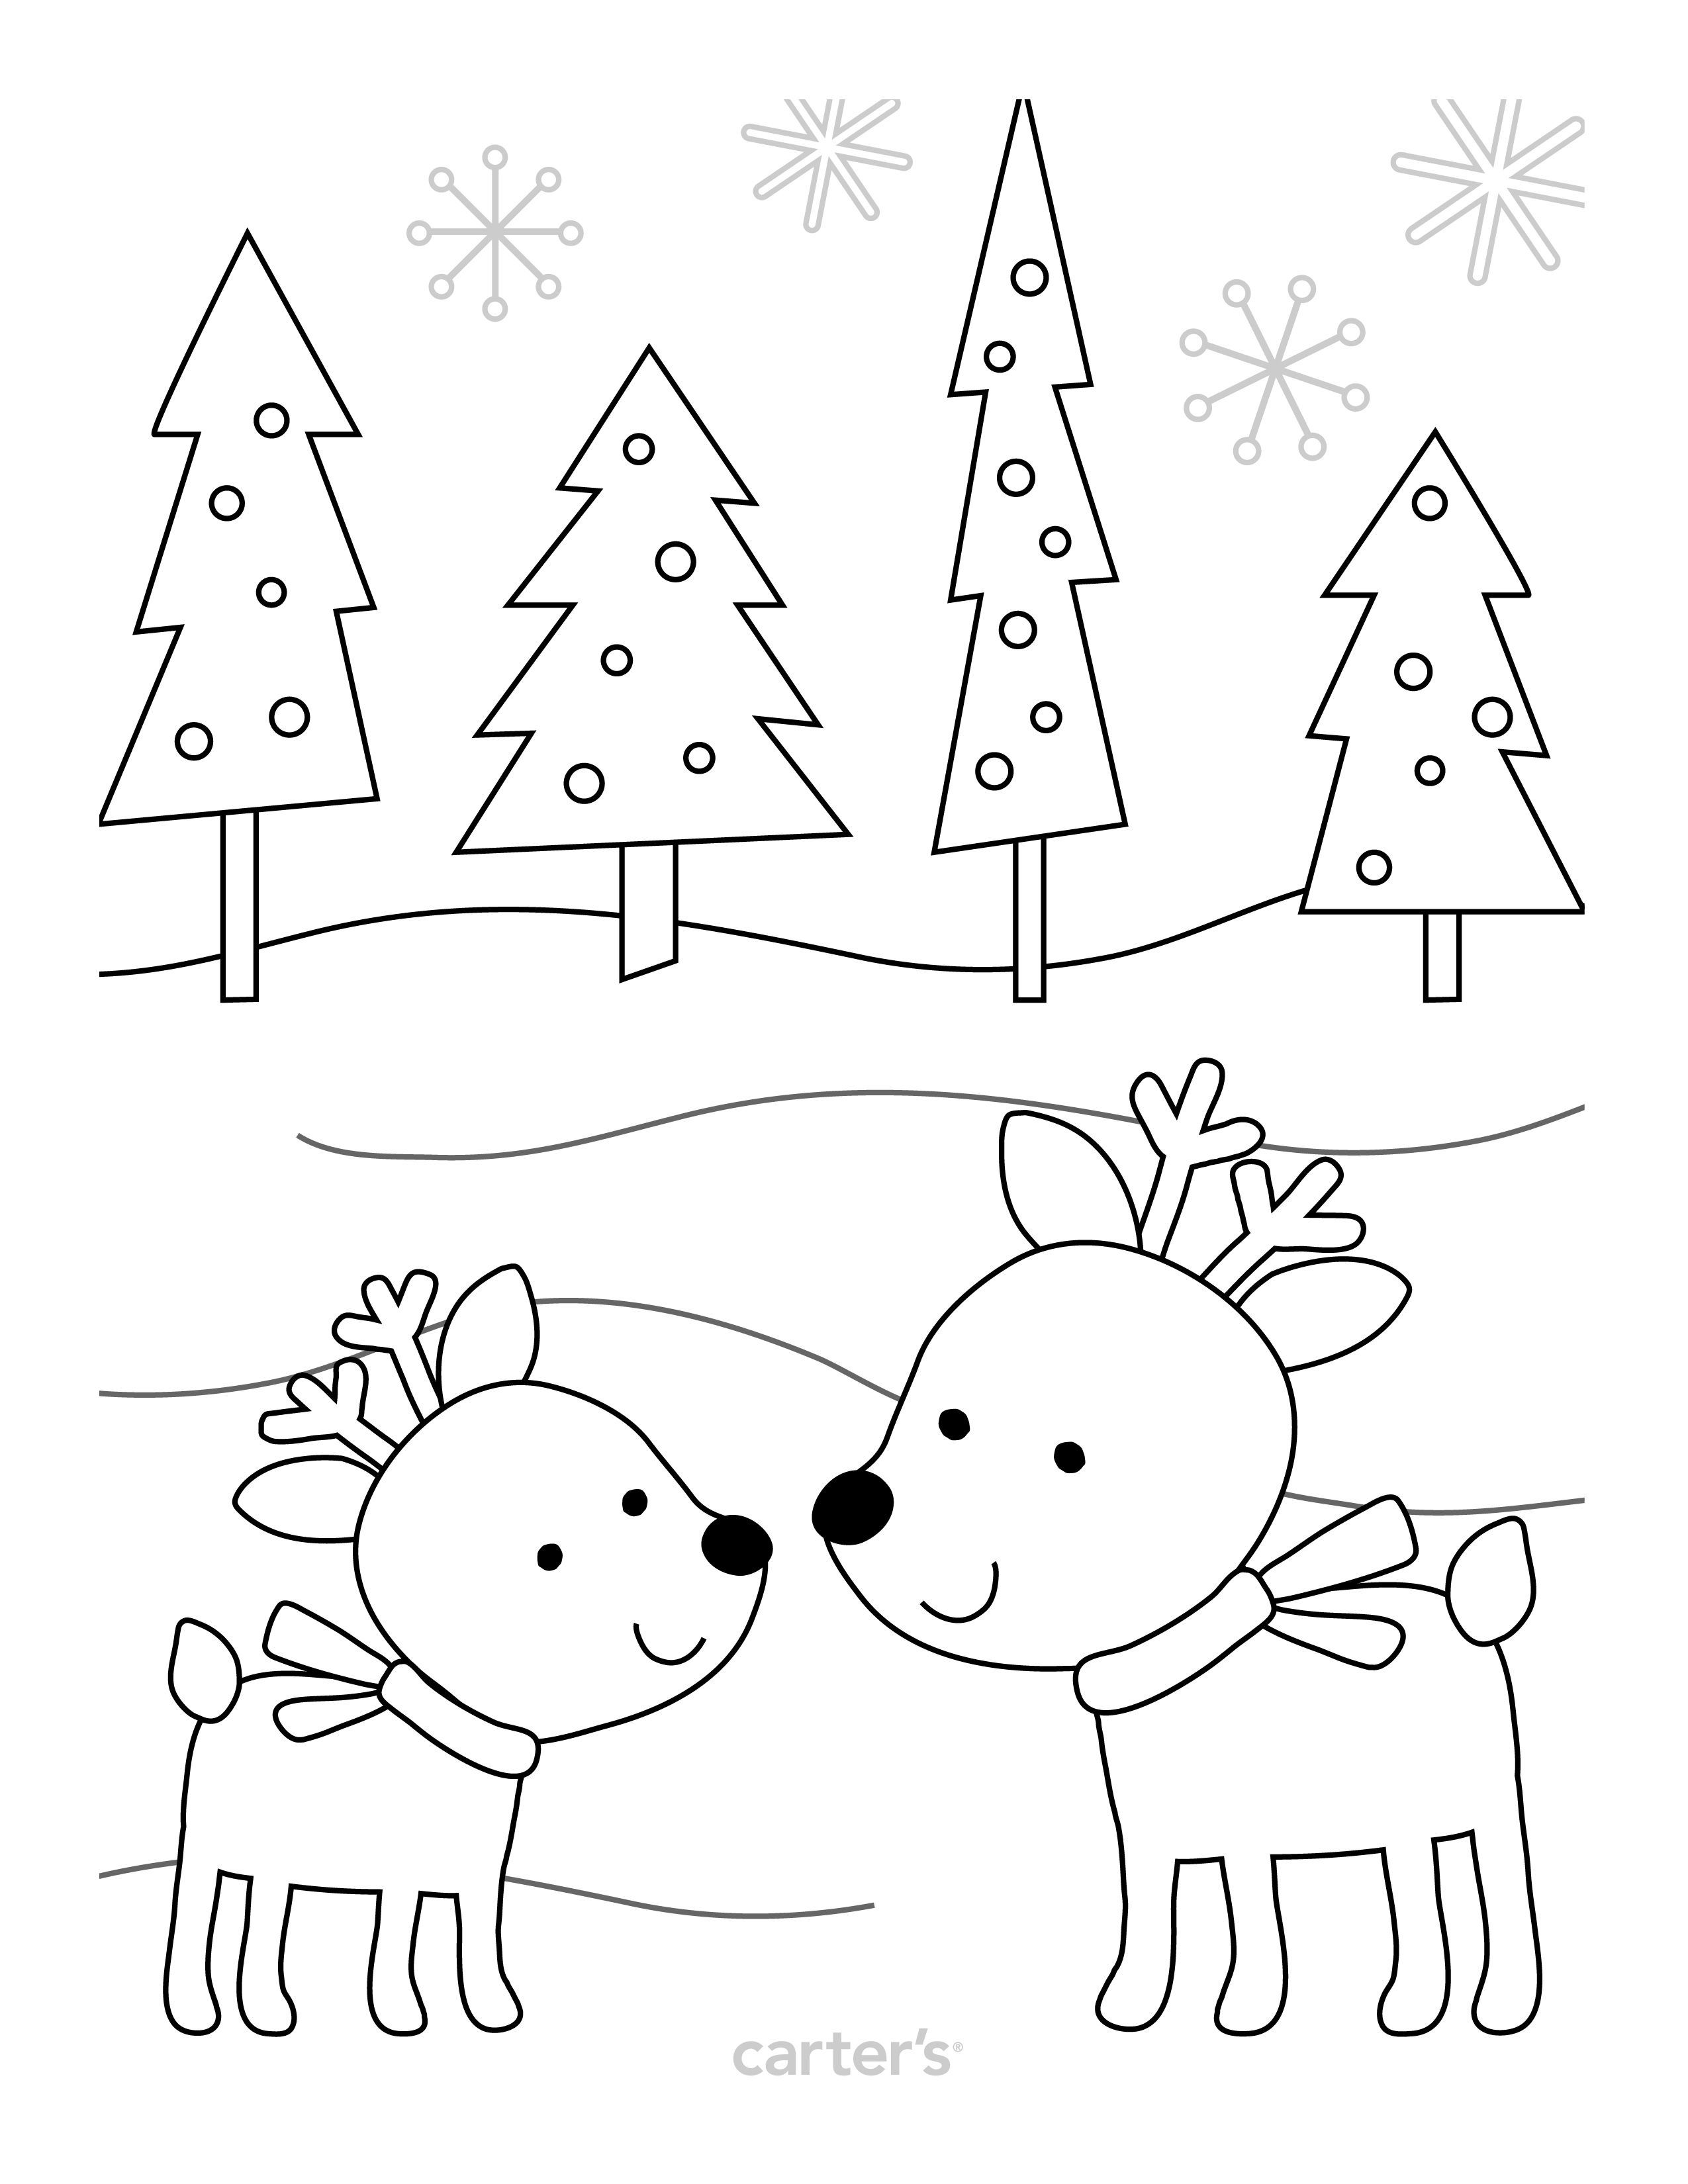 Adorable Holiday Coloring Pages  Letters to Santa Printables